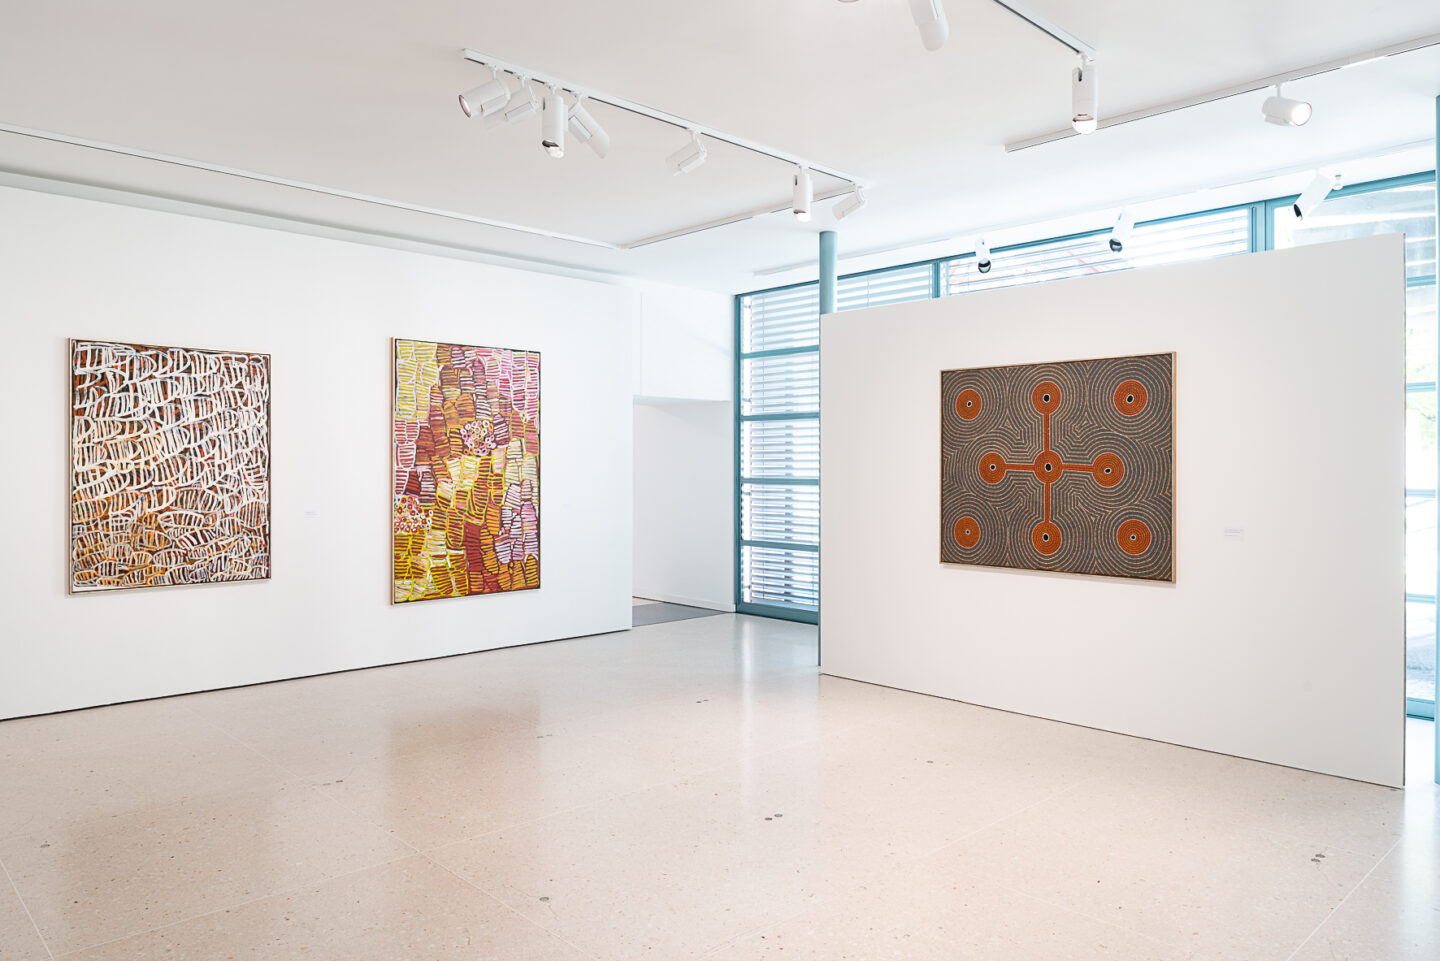 Exhibition View Groupshow «My Mothers Country; view on Minnie Motorcar Pwerle, Awelye Women-Dreaming, 2003 and Awelye Bush Melon Dreaming, 2002; Jimmy Kngale Motorcar, Kakadu Plum Men-Dreaming, 1994» at Kunsthaus Zug, Zug, 2019 / Photo: Jorit Aust / Courtesy: the artists, Collection Clement and Kunsthaus Zug